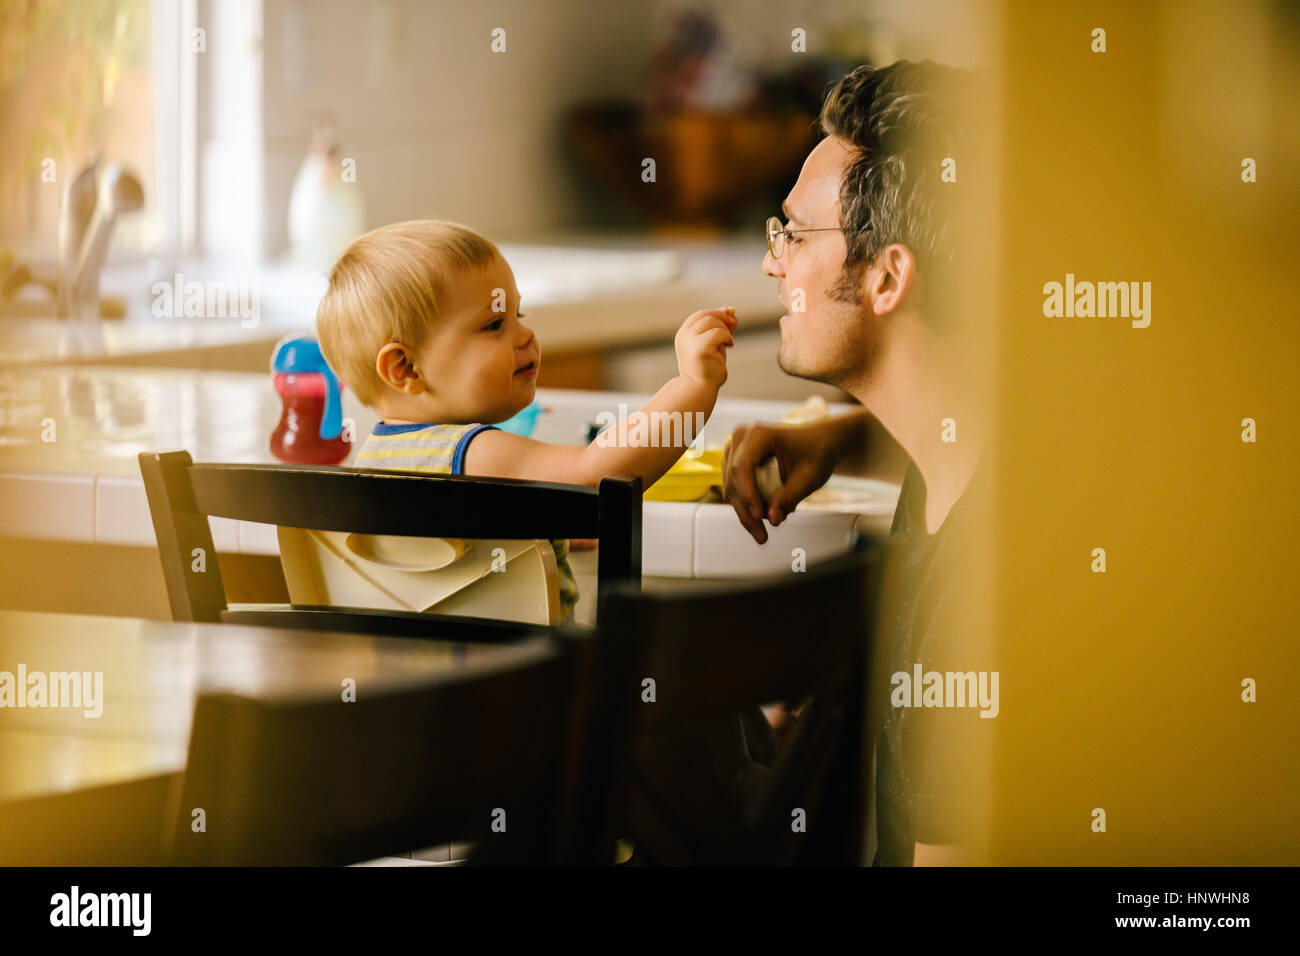 Father helping young son at meal time - Stock Image